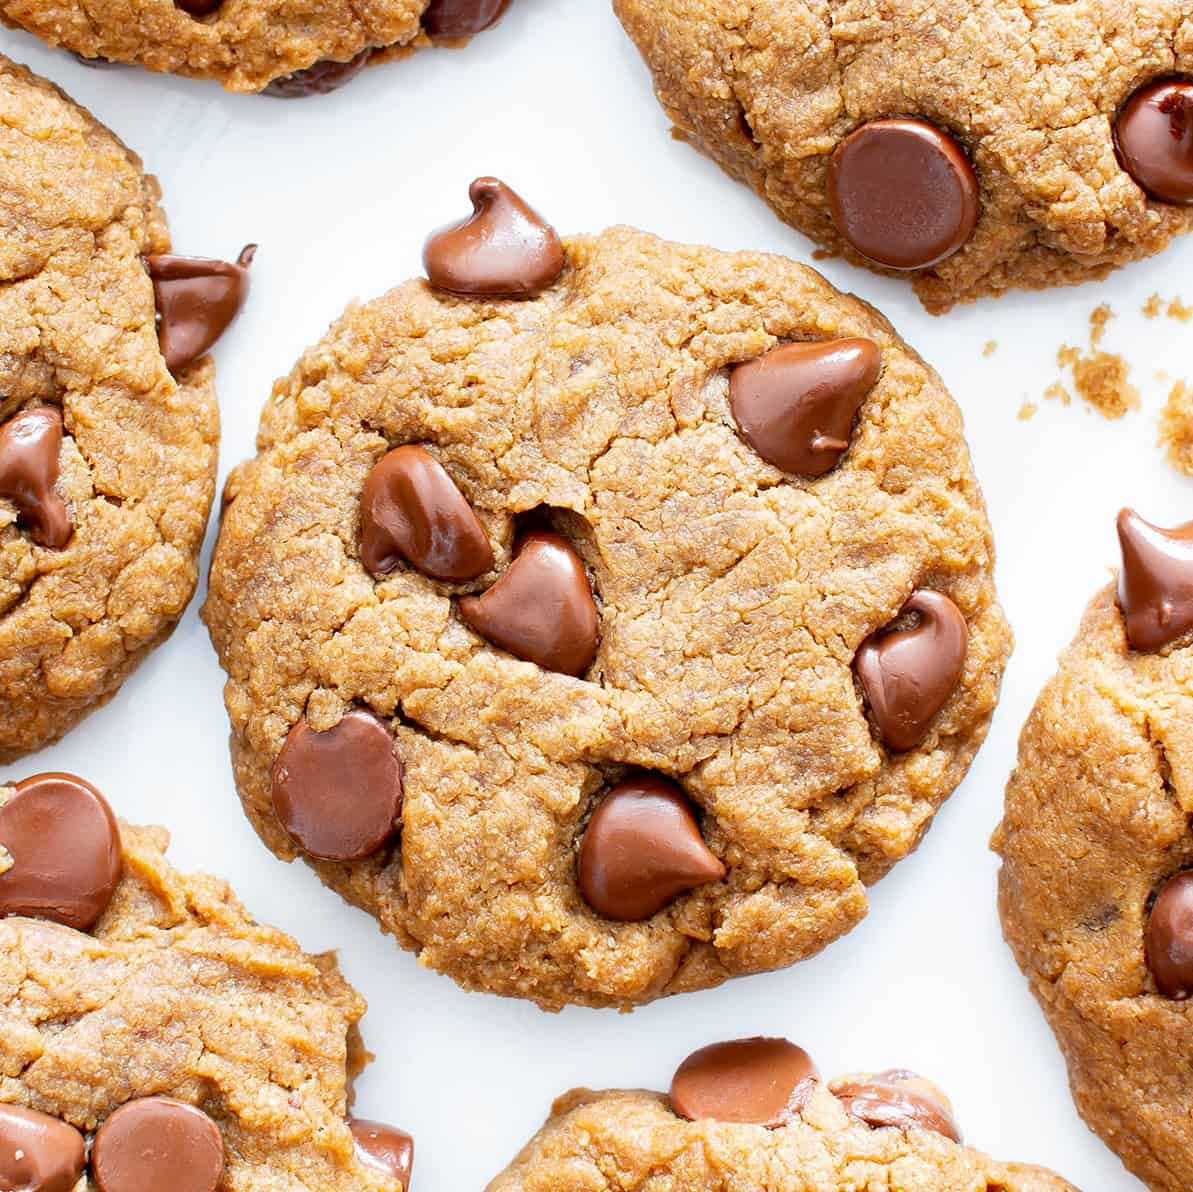 Gluten Free Peanut Butter Chocolate Chip Cookies V Gf An Easy